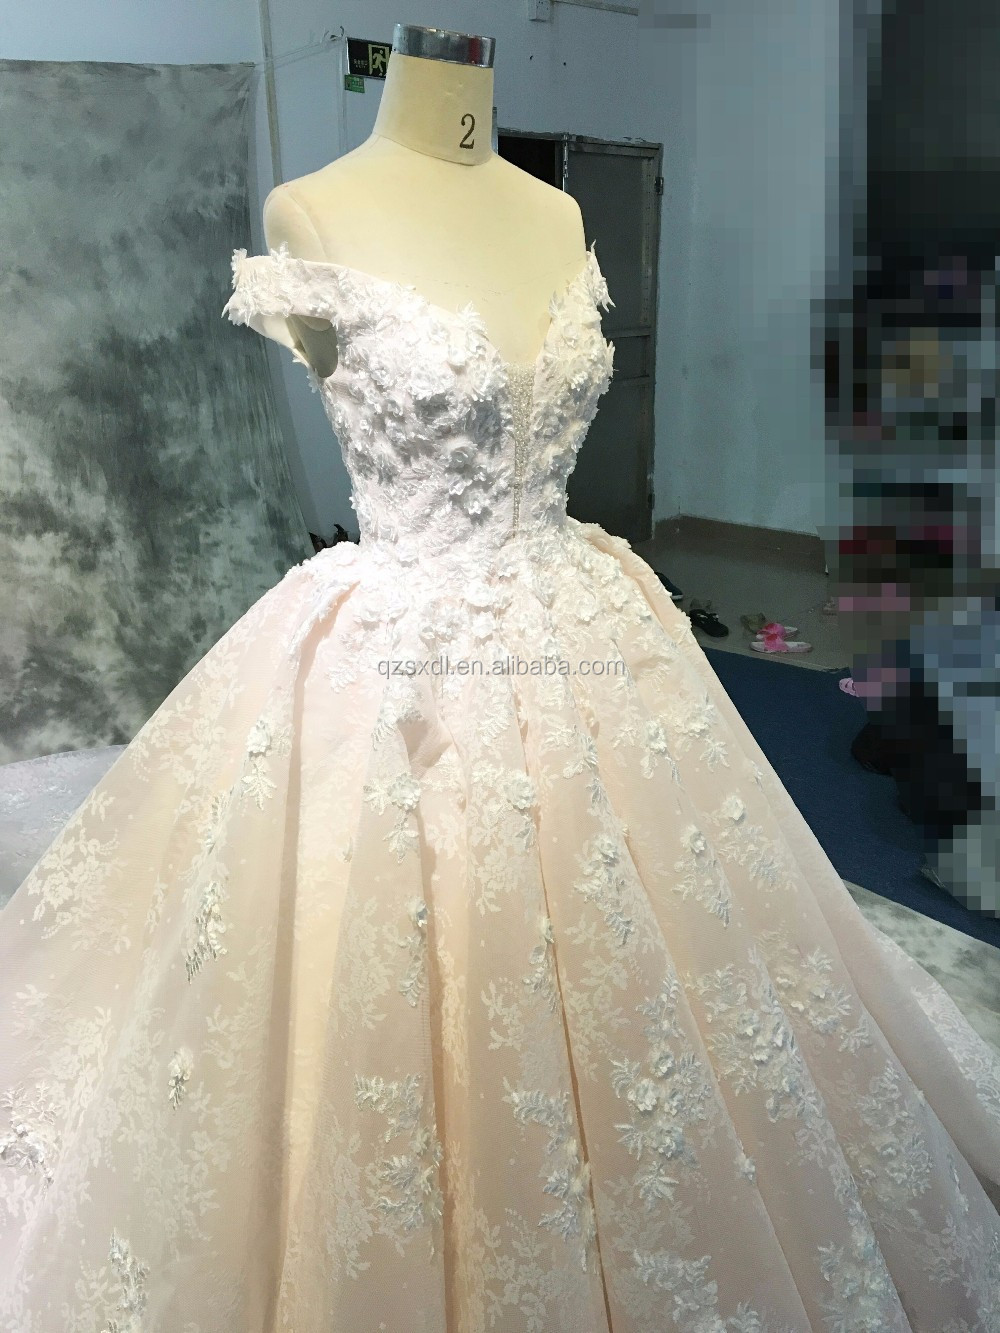 China Guangzhou Wedding Dress Luxury Bridal Gown High Quality Pink ...